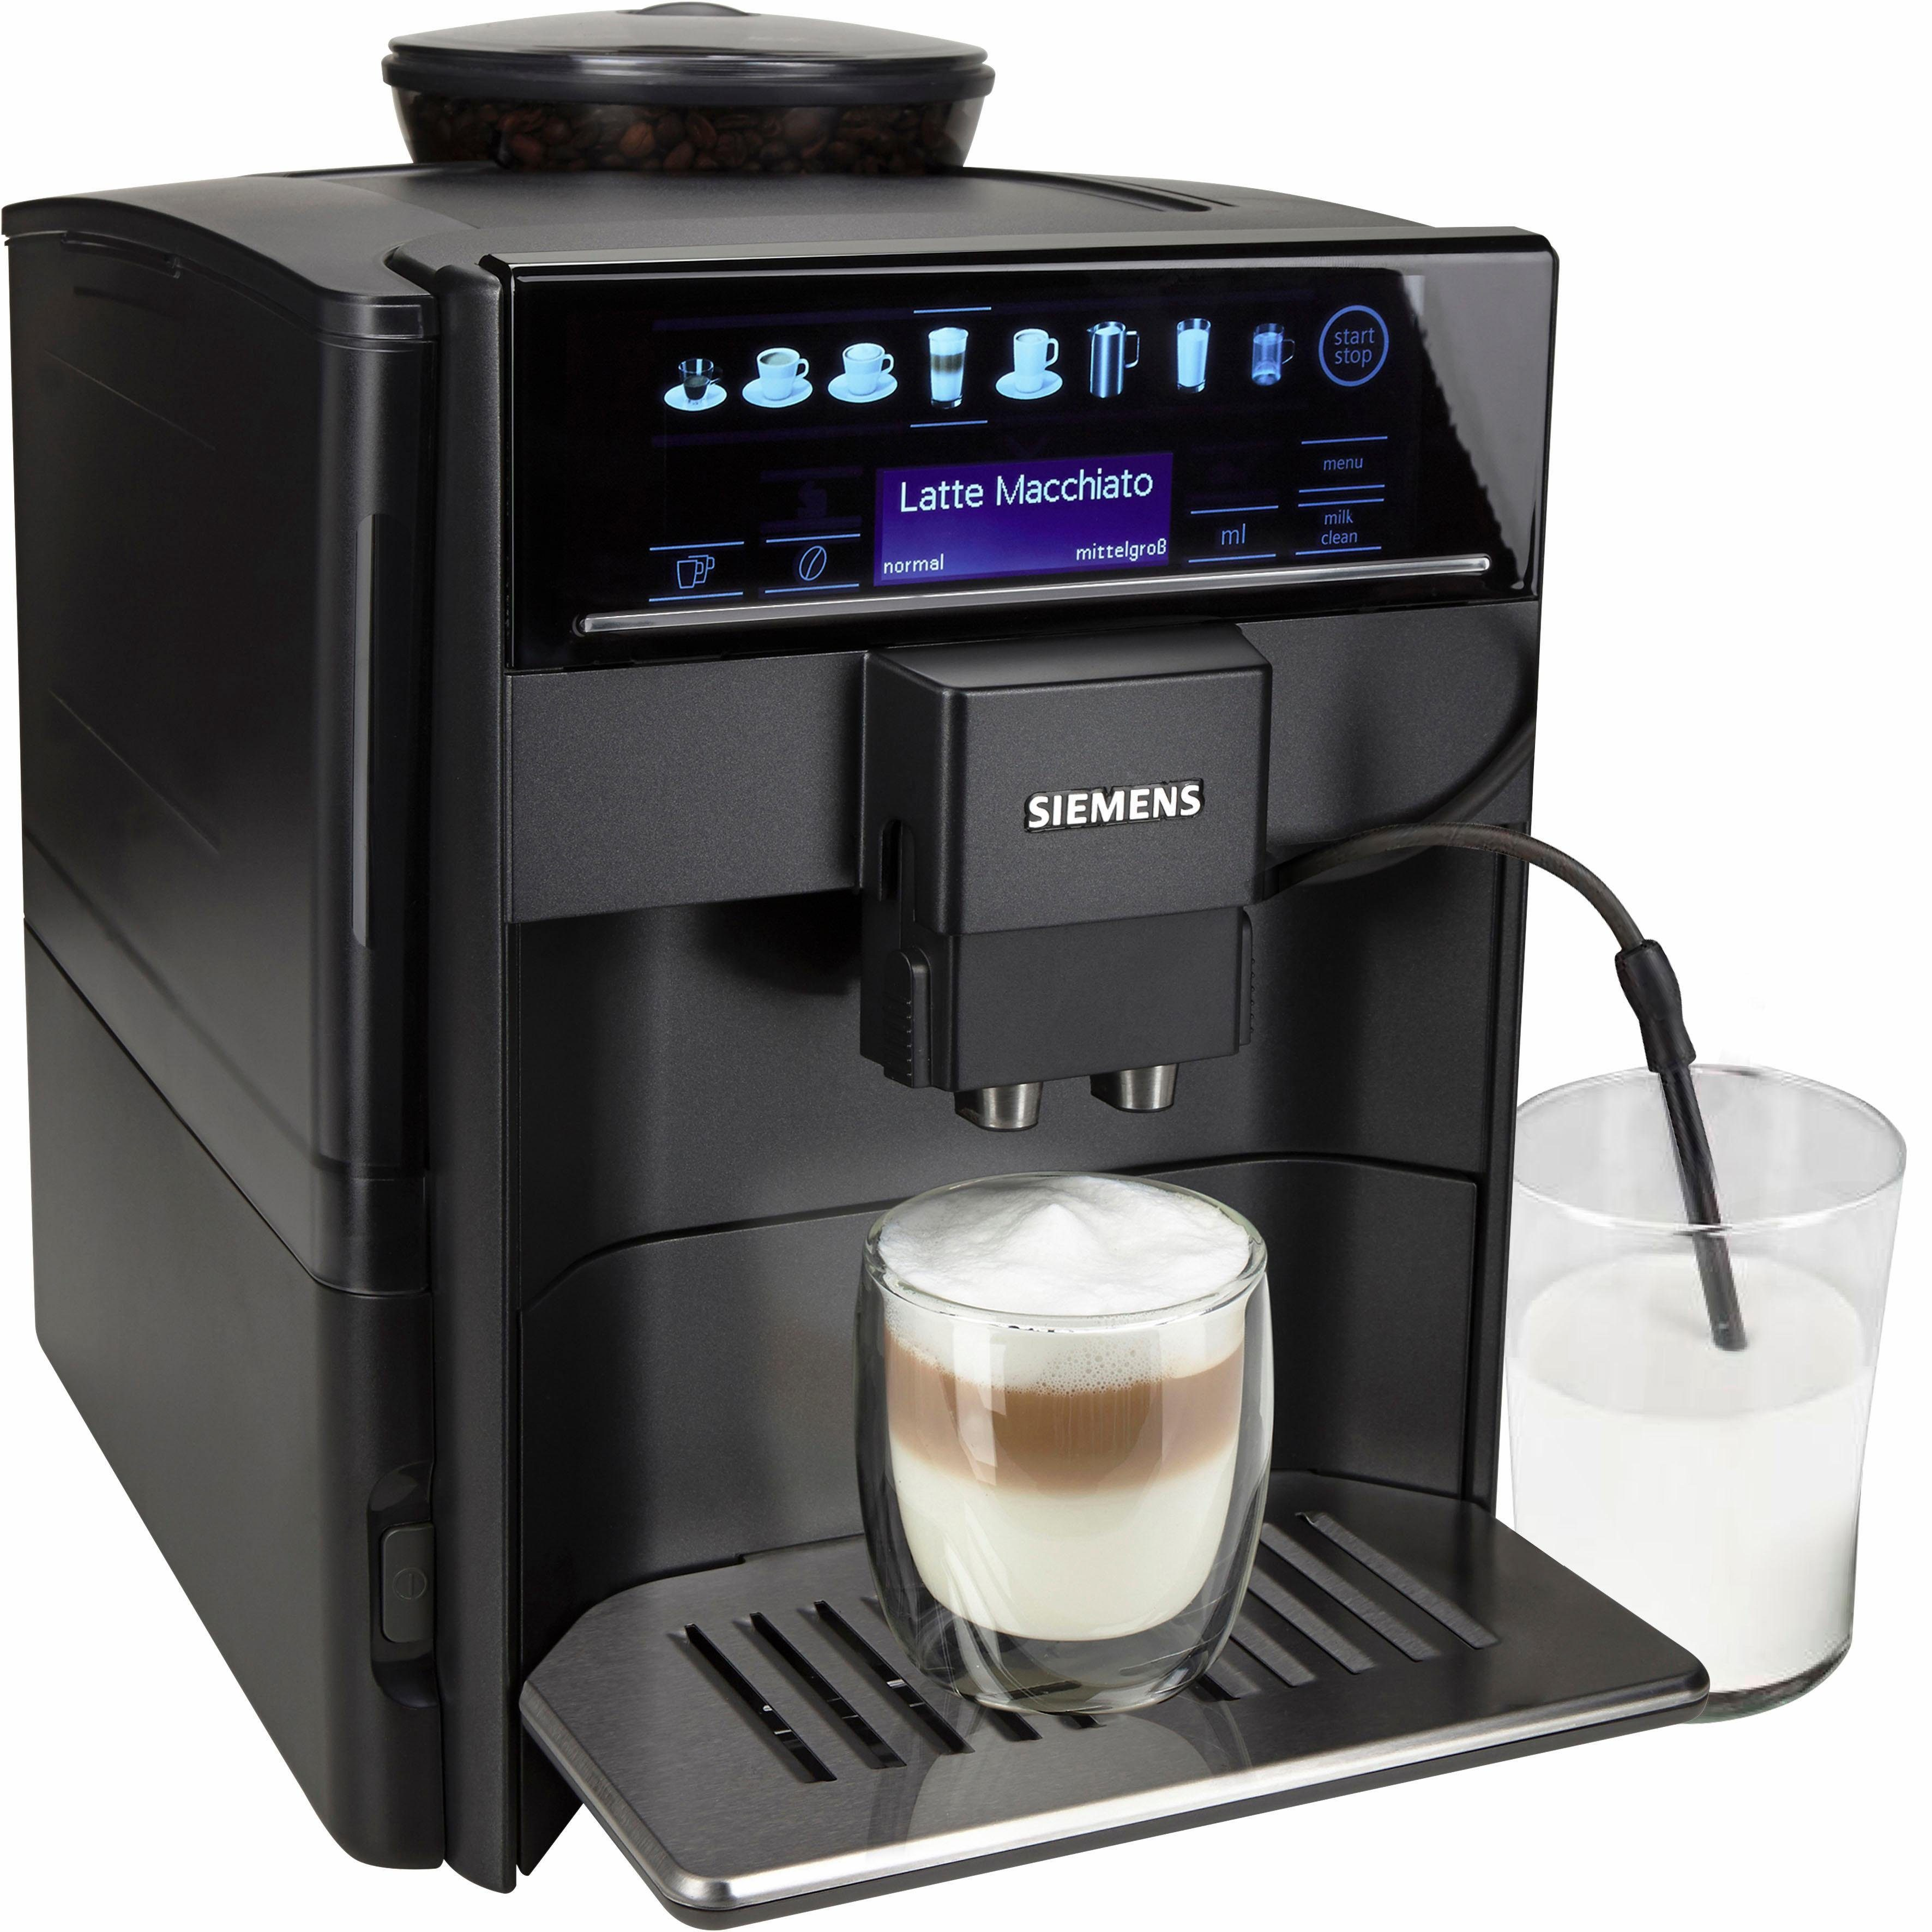 Siemens Kaffeevollautomat EQ.6 series 400 TE604509DE, mit OneTouch-Double-Cup-Funktion